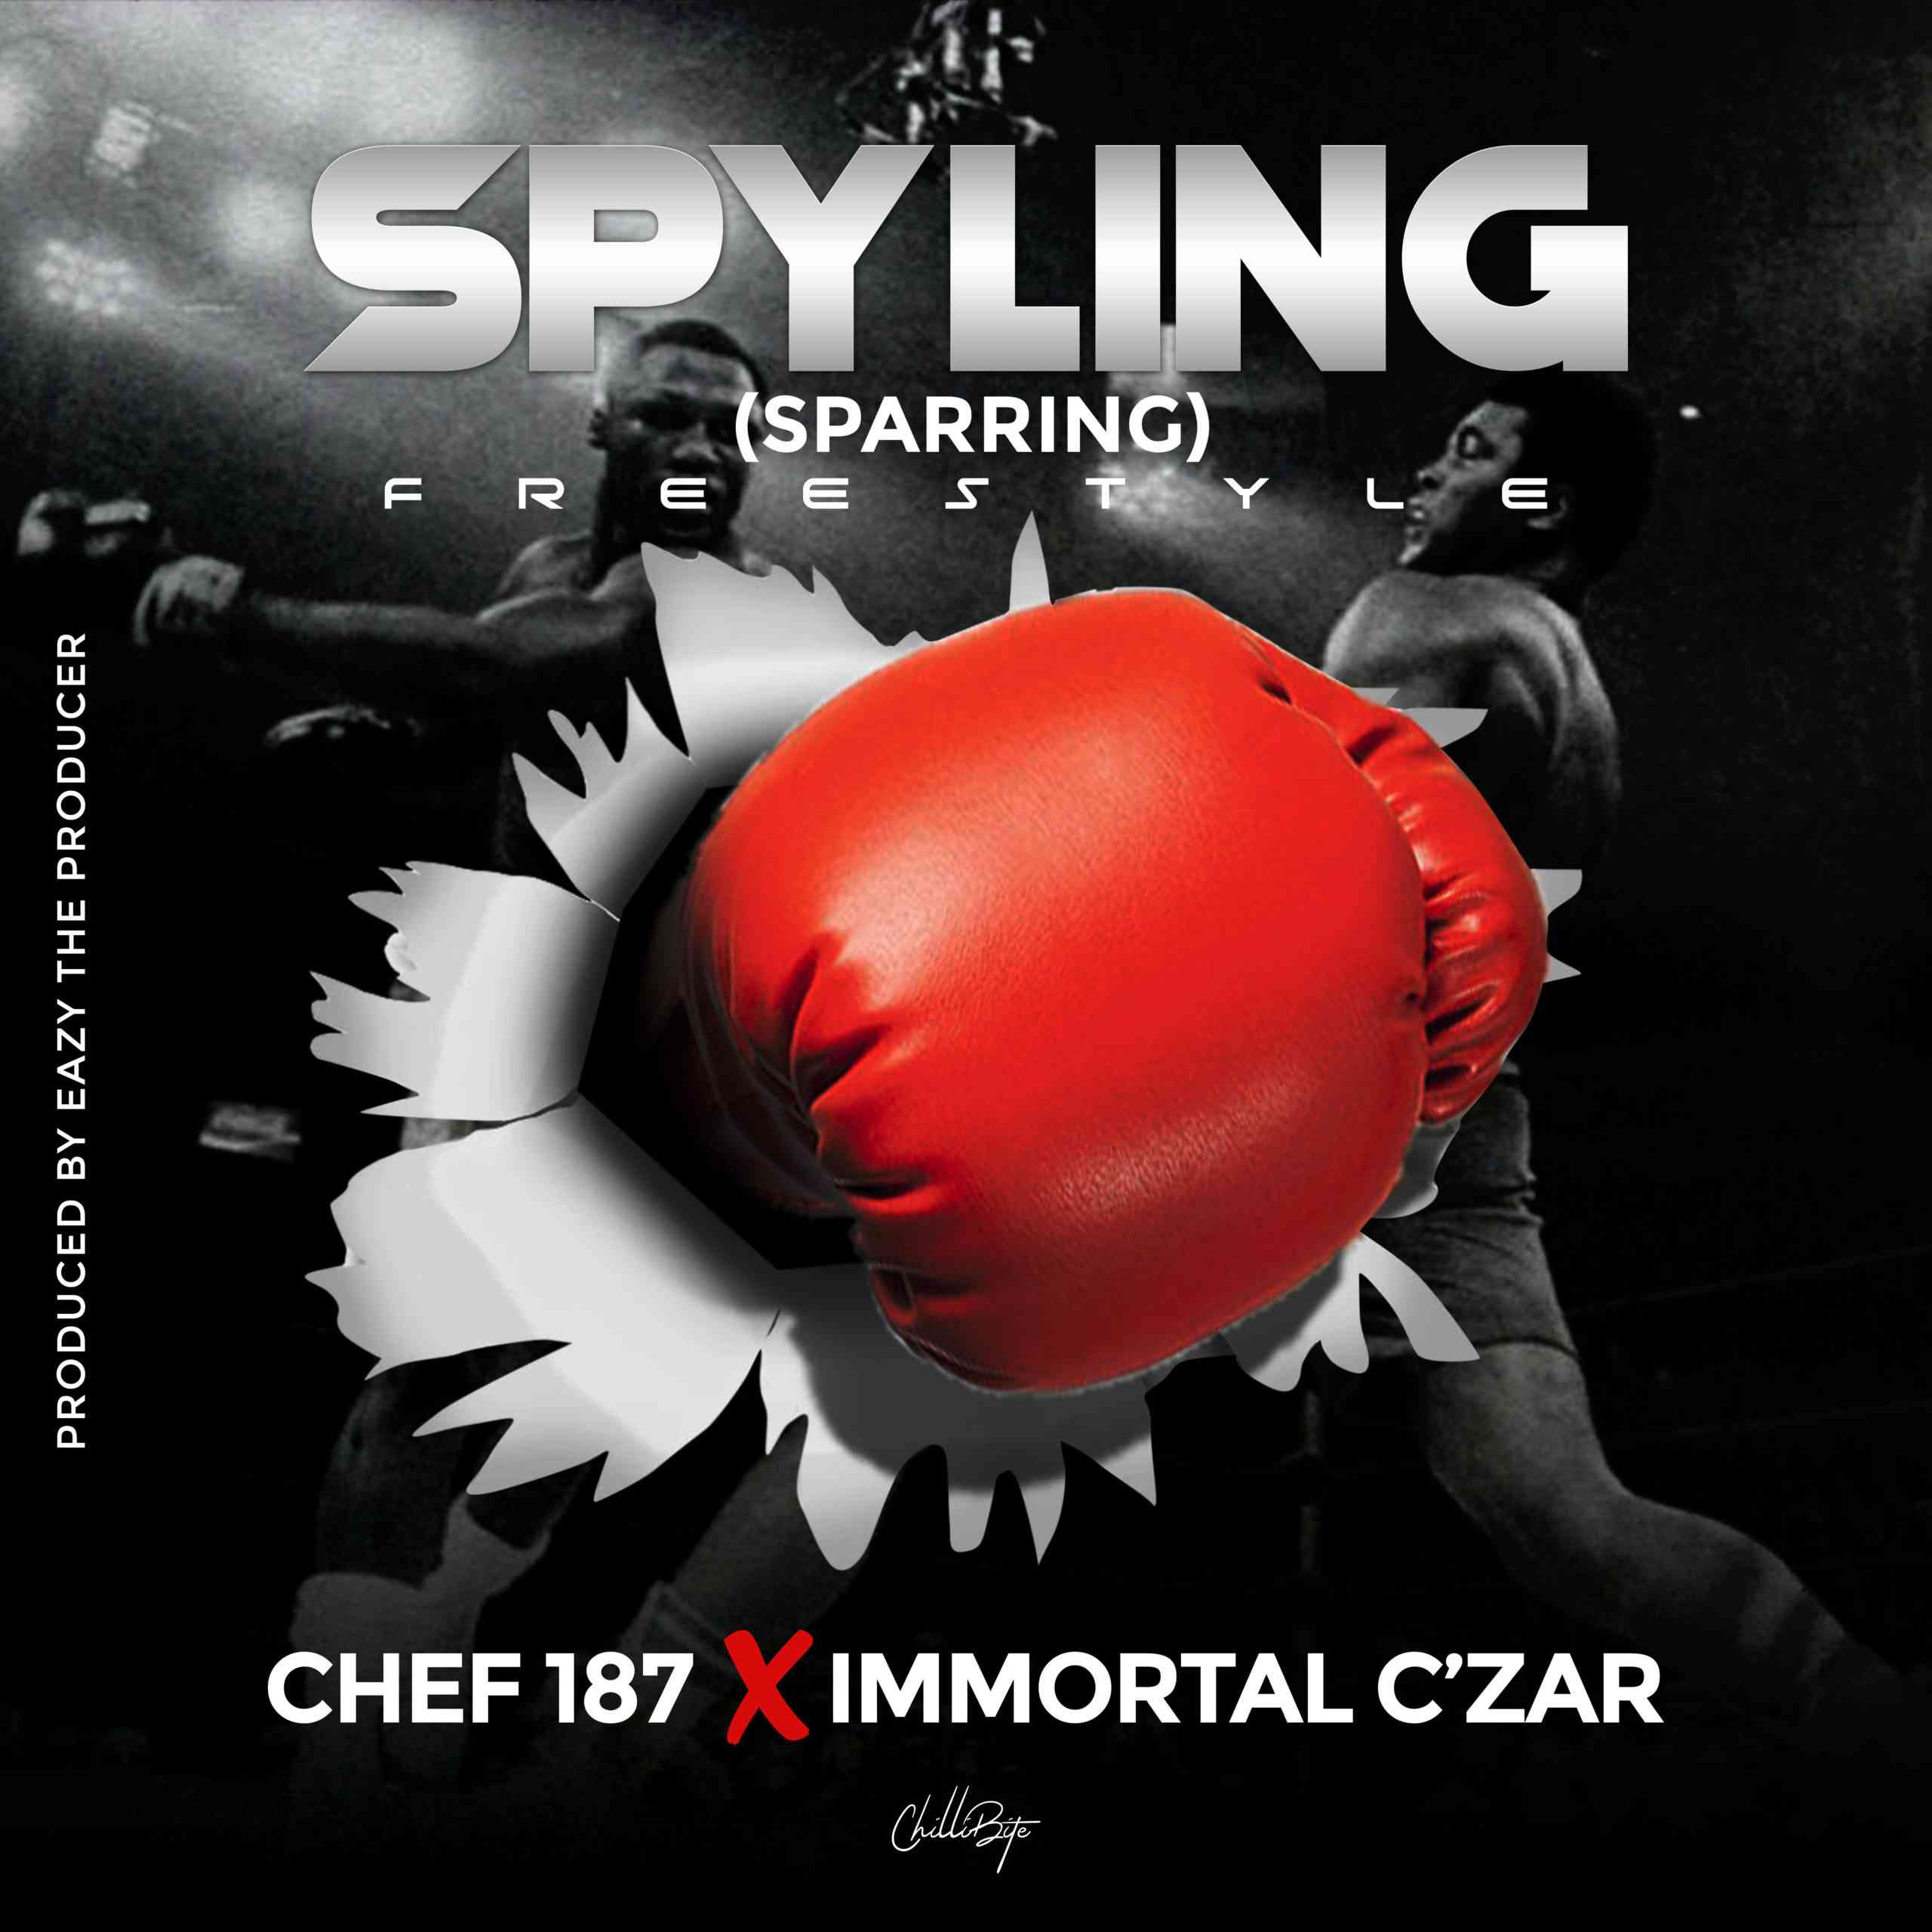 """Chef 187 X Immortal C'Zar – """"Spyling (Sparring) Freestyle"""""""